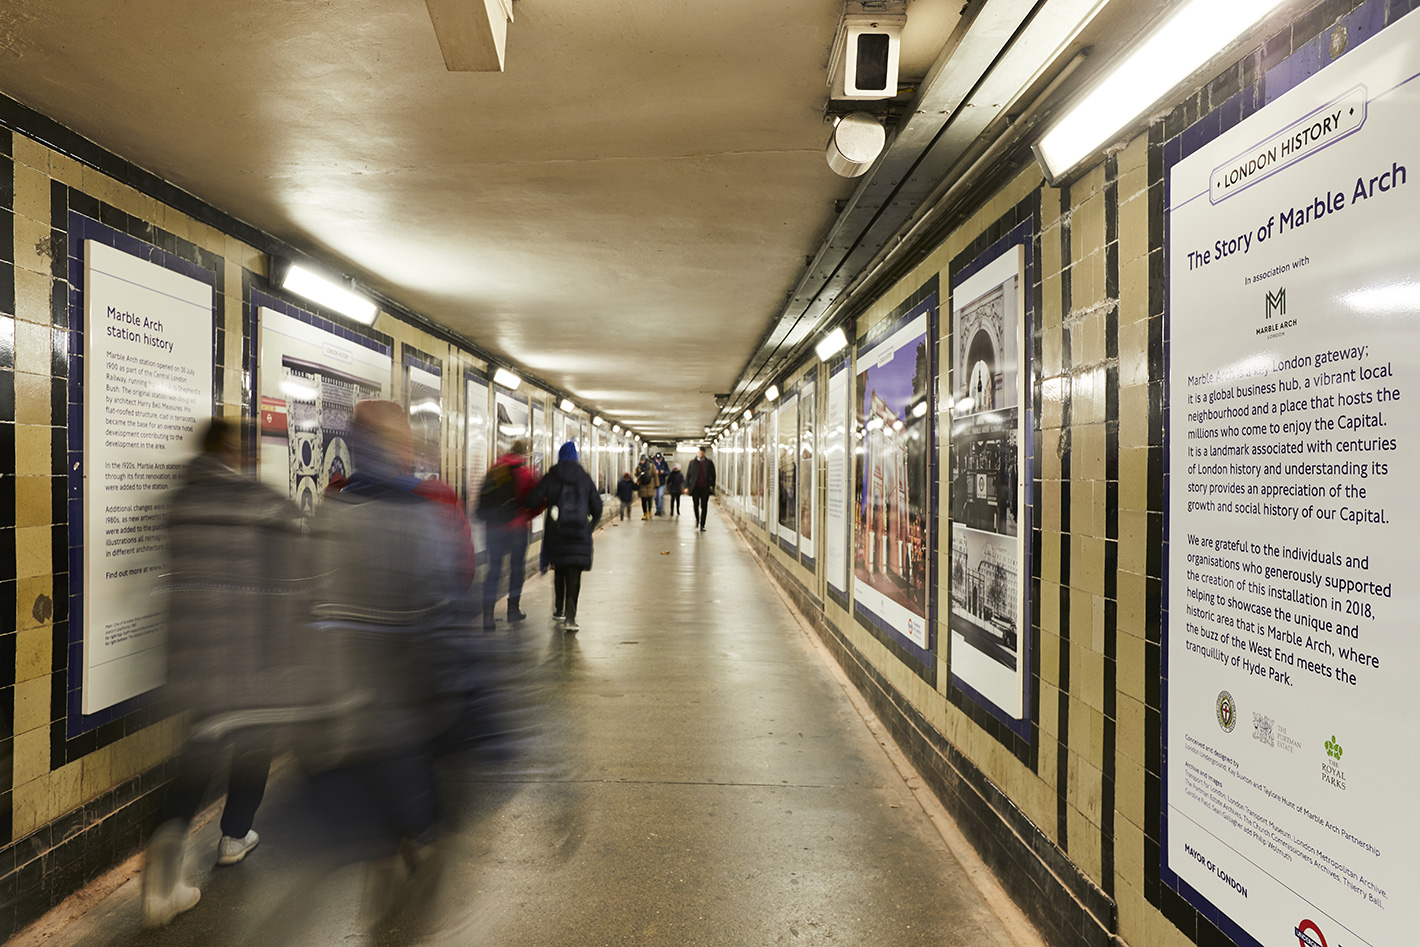 London Underground Showcases The Story of Marble Arch